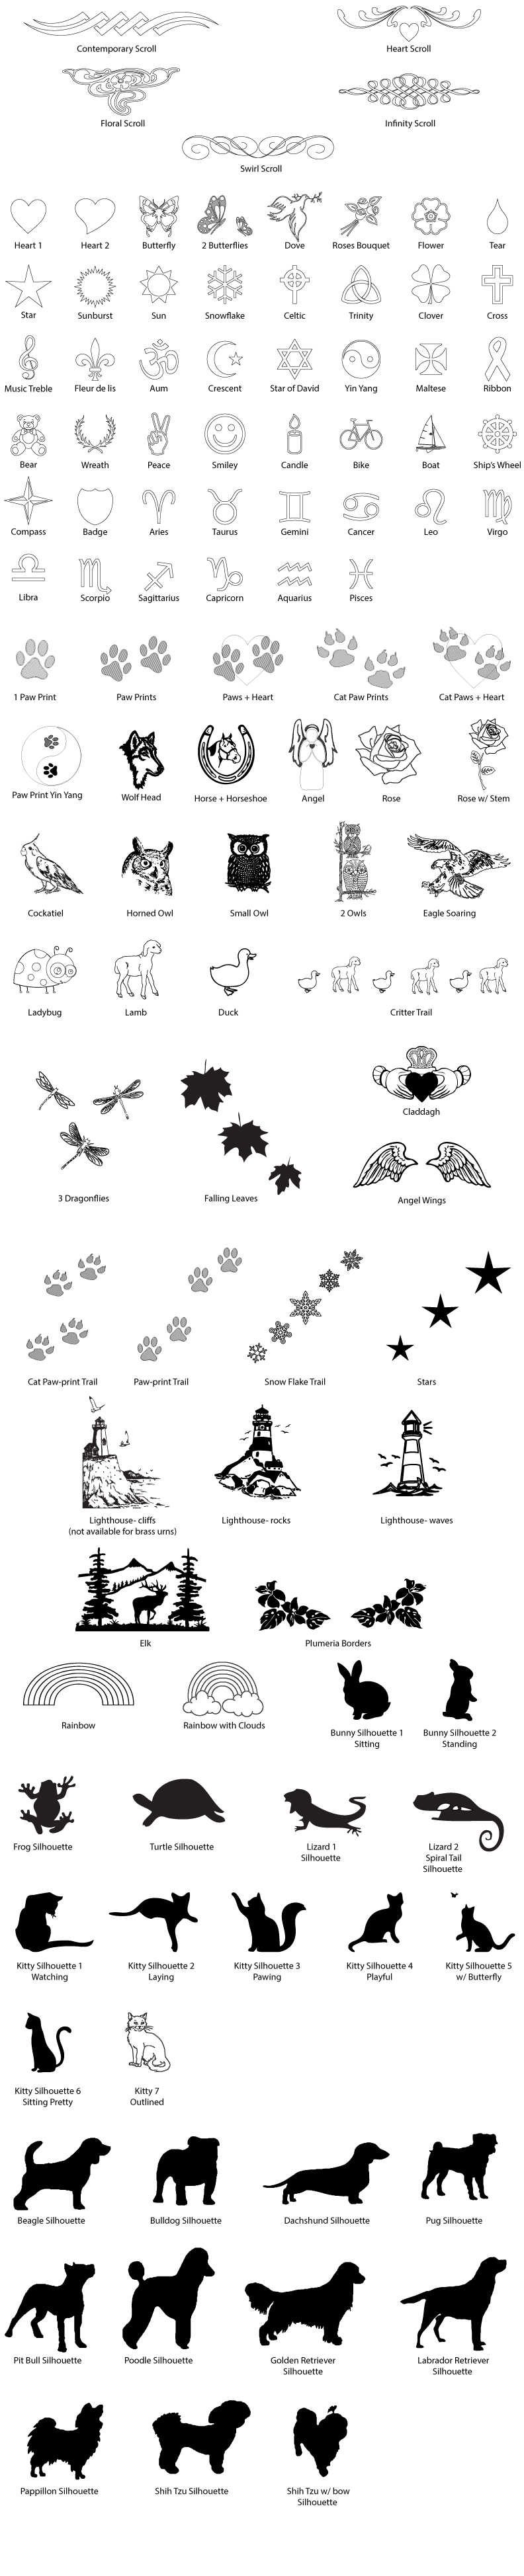 clip art for engraving on pet memorial products